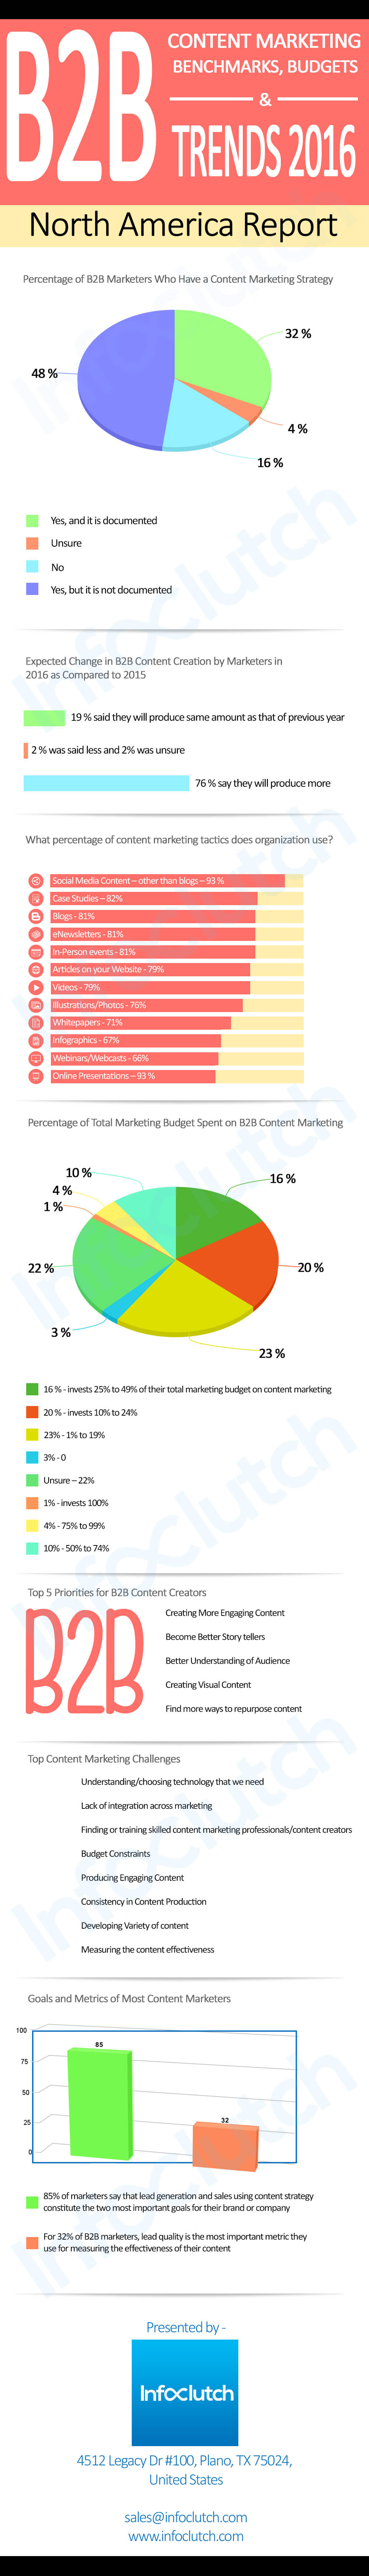 B2B Content Marketing Benchmarks, Budgets, and Trends 2016 - North America Report-infographic-plaza